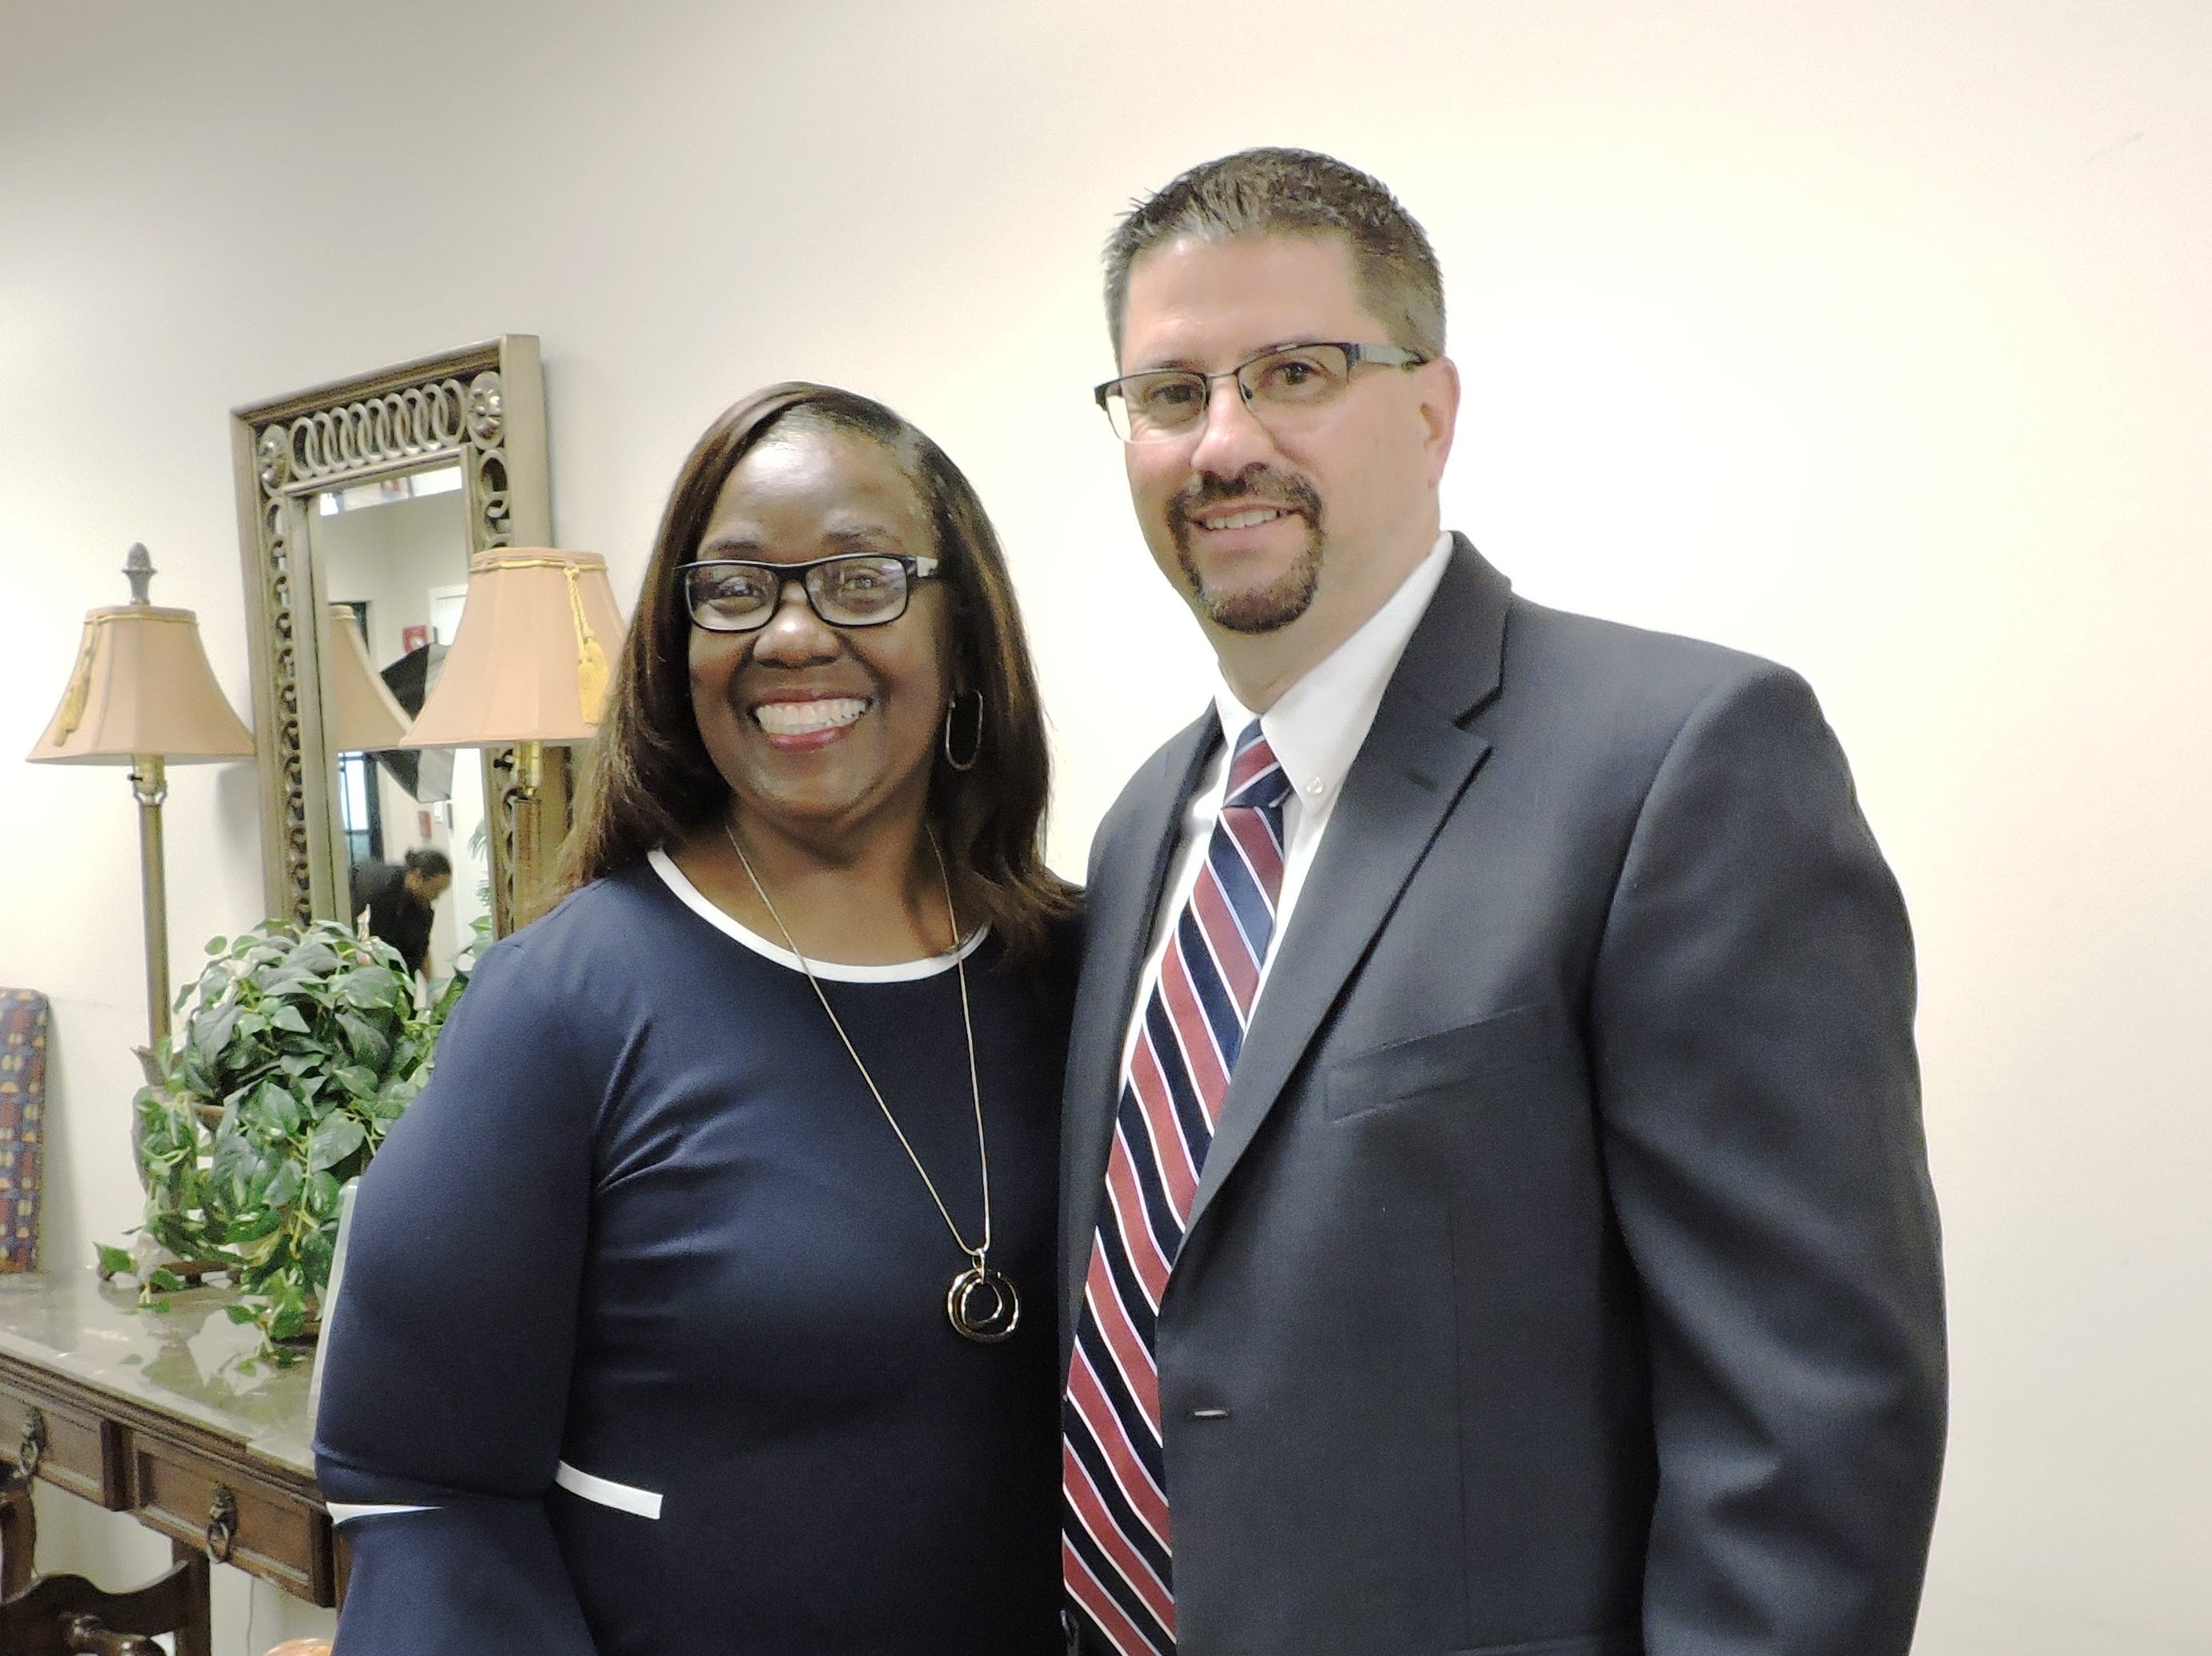 Thelma Washington, left, and Stuart City Manager David Dyess at the 2019 Freedom Fund Banquet.